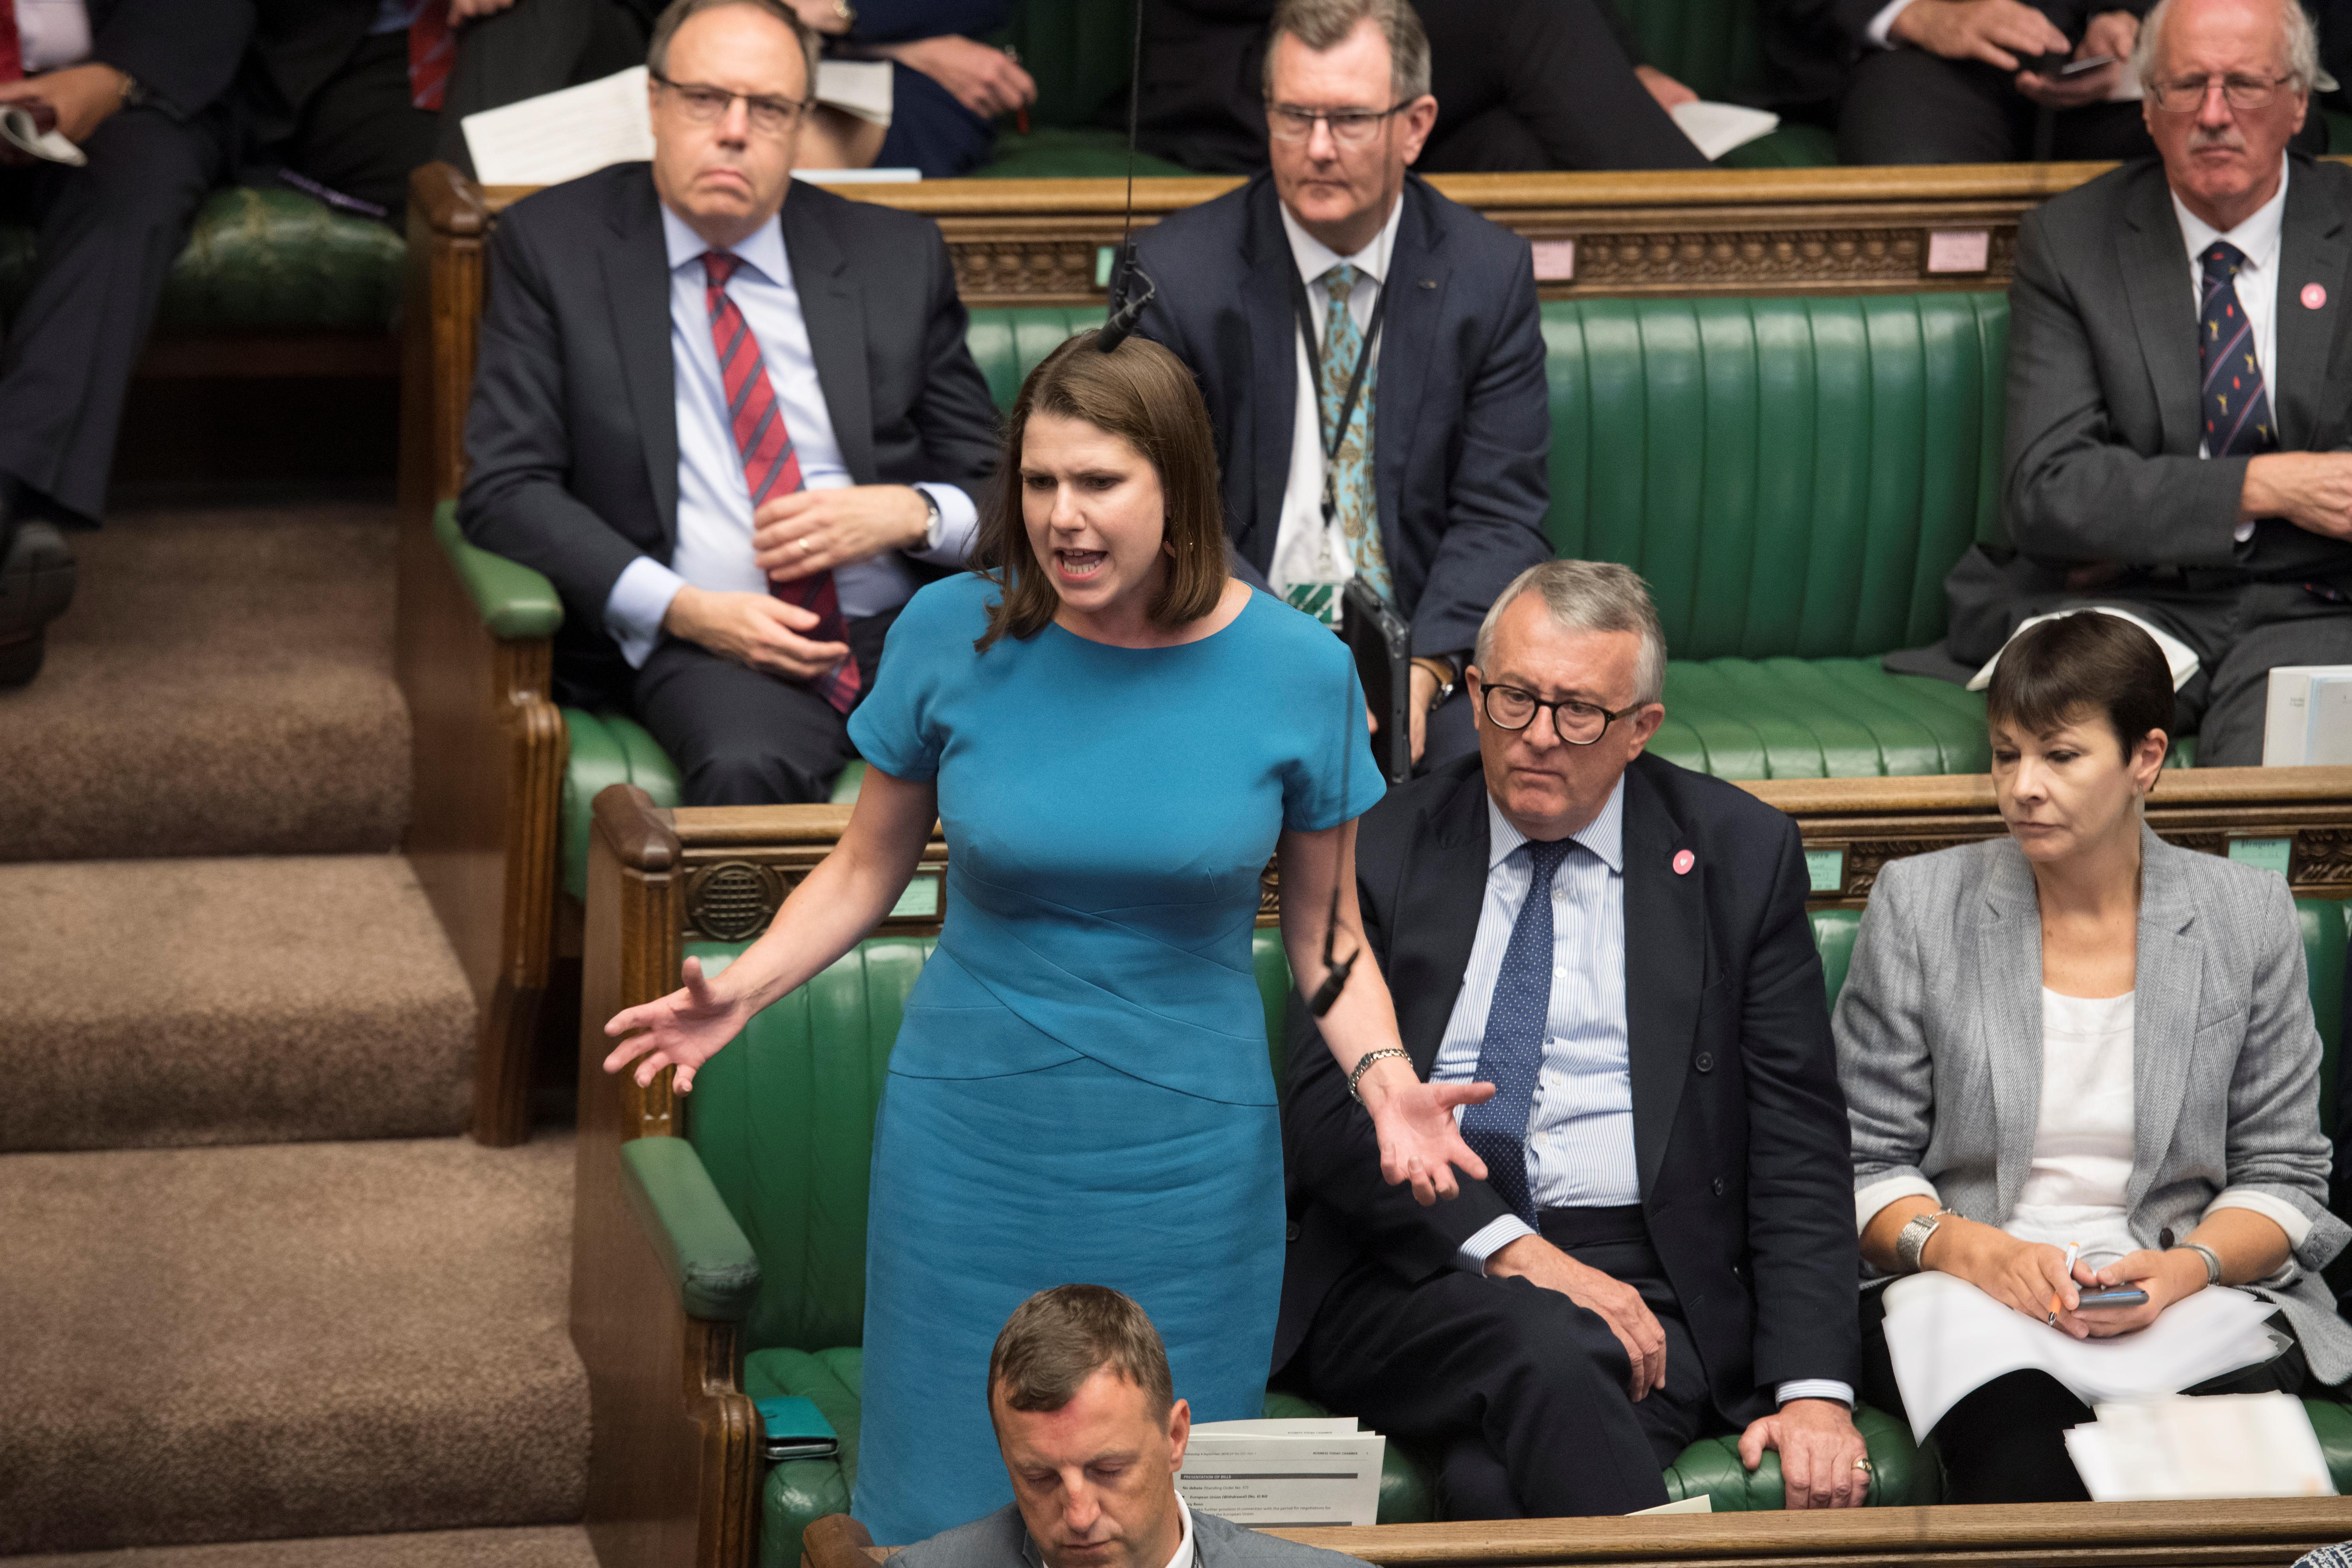 Britain's Liberal Democrat leader Jo Swinson speaks during Prime Minister's Questions session in the House of Commons in London, Britain September 4, 2019. ©UK Parliament/Jessica Taylor/Handout via REUTERS ATTENTION EDITORS - THIS IMAGE WAS PROVIDED BY A THIRD PARTY